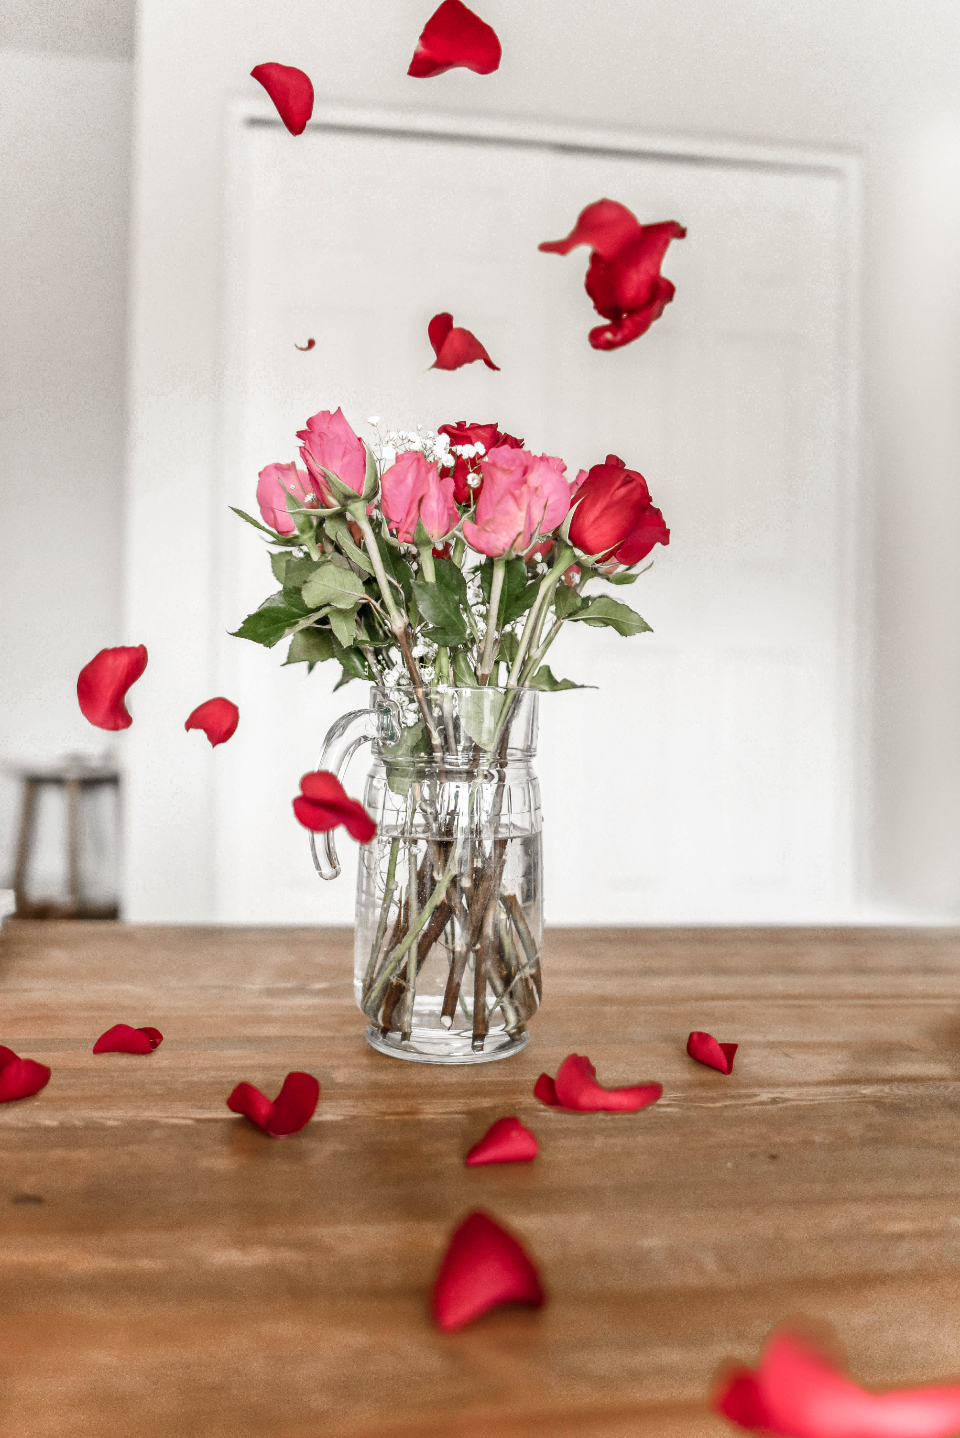 love valentine's day valentine valentine's flowers heart flower red rose rose petals petal bouquet pink romantic candy candy hearts holiday light bokeh heart bokeh romance bloom girl wallpaper background love background couple sweet flatlay c